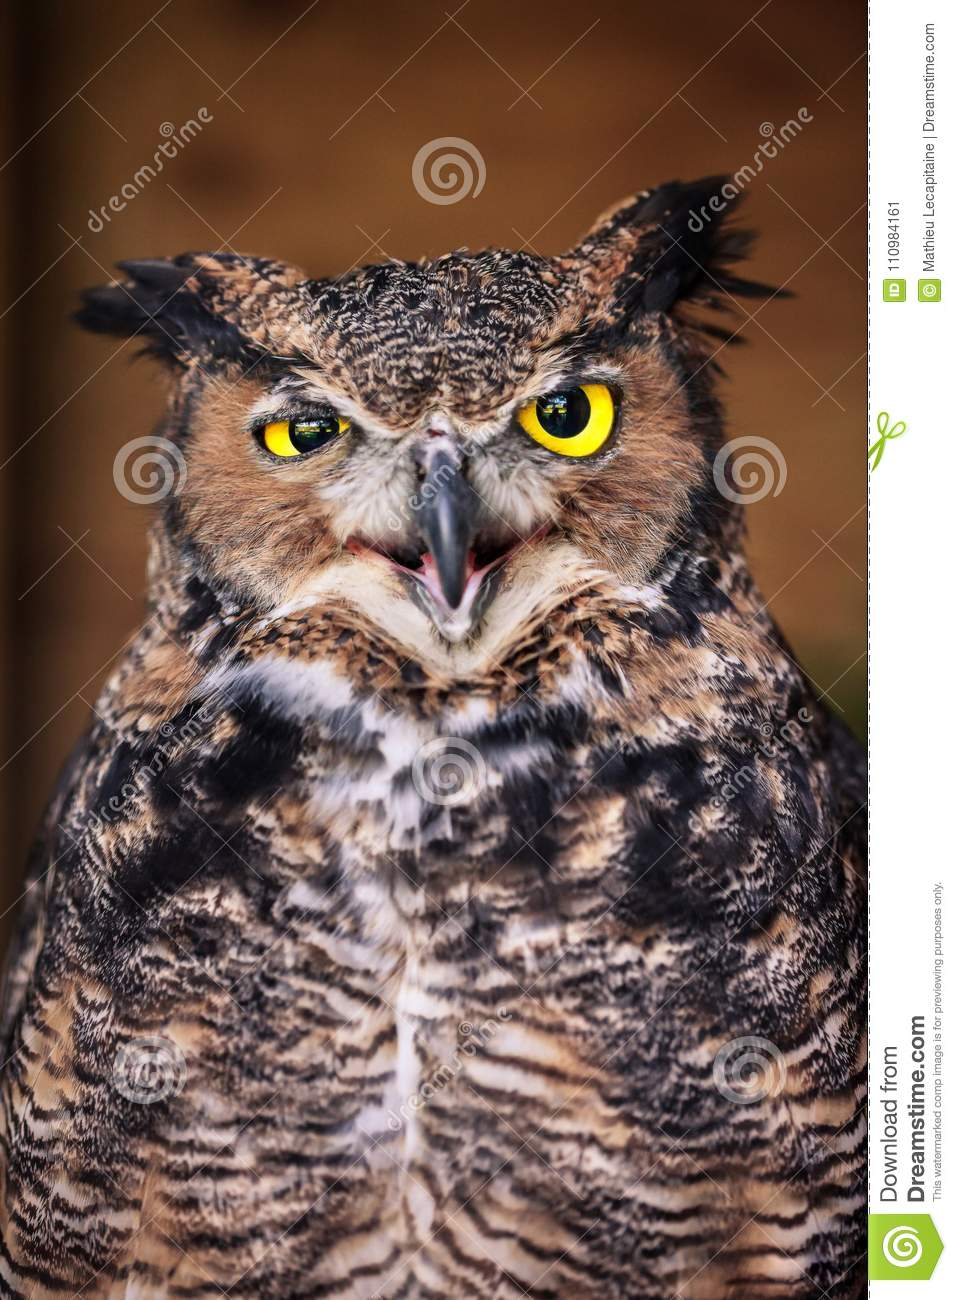 Angry owl close up